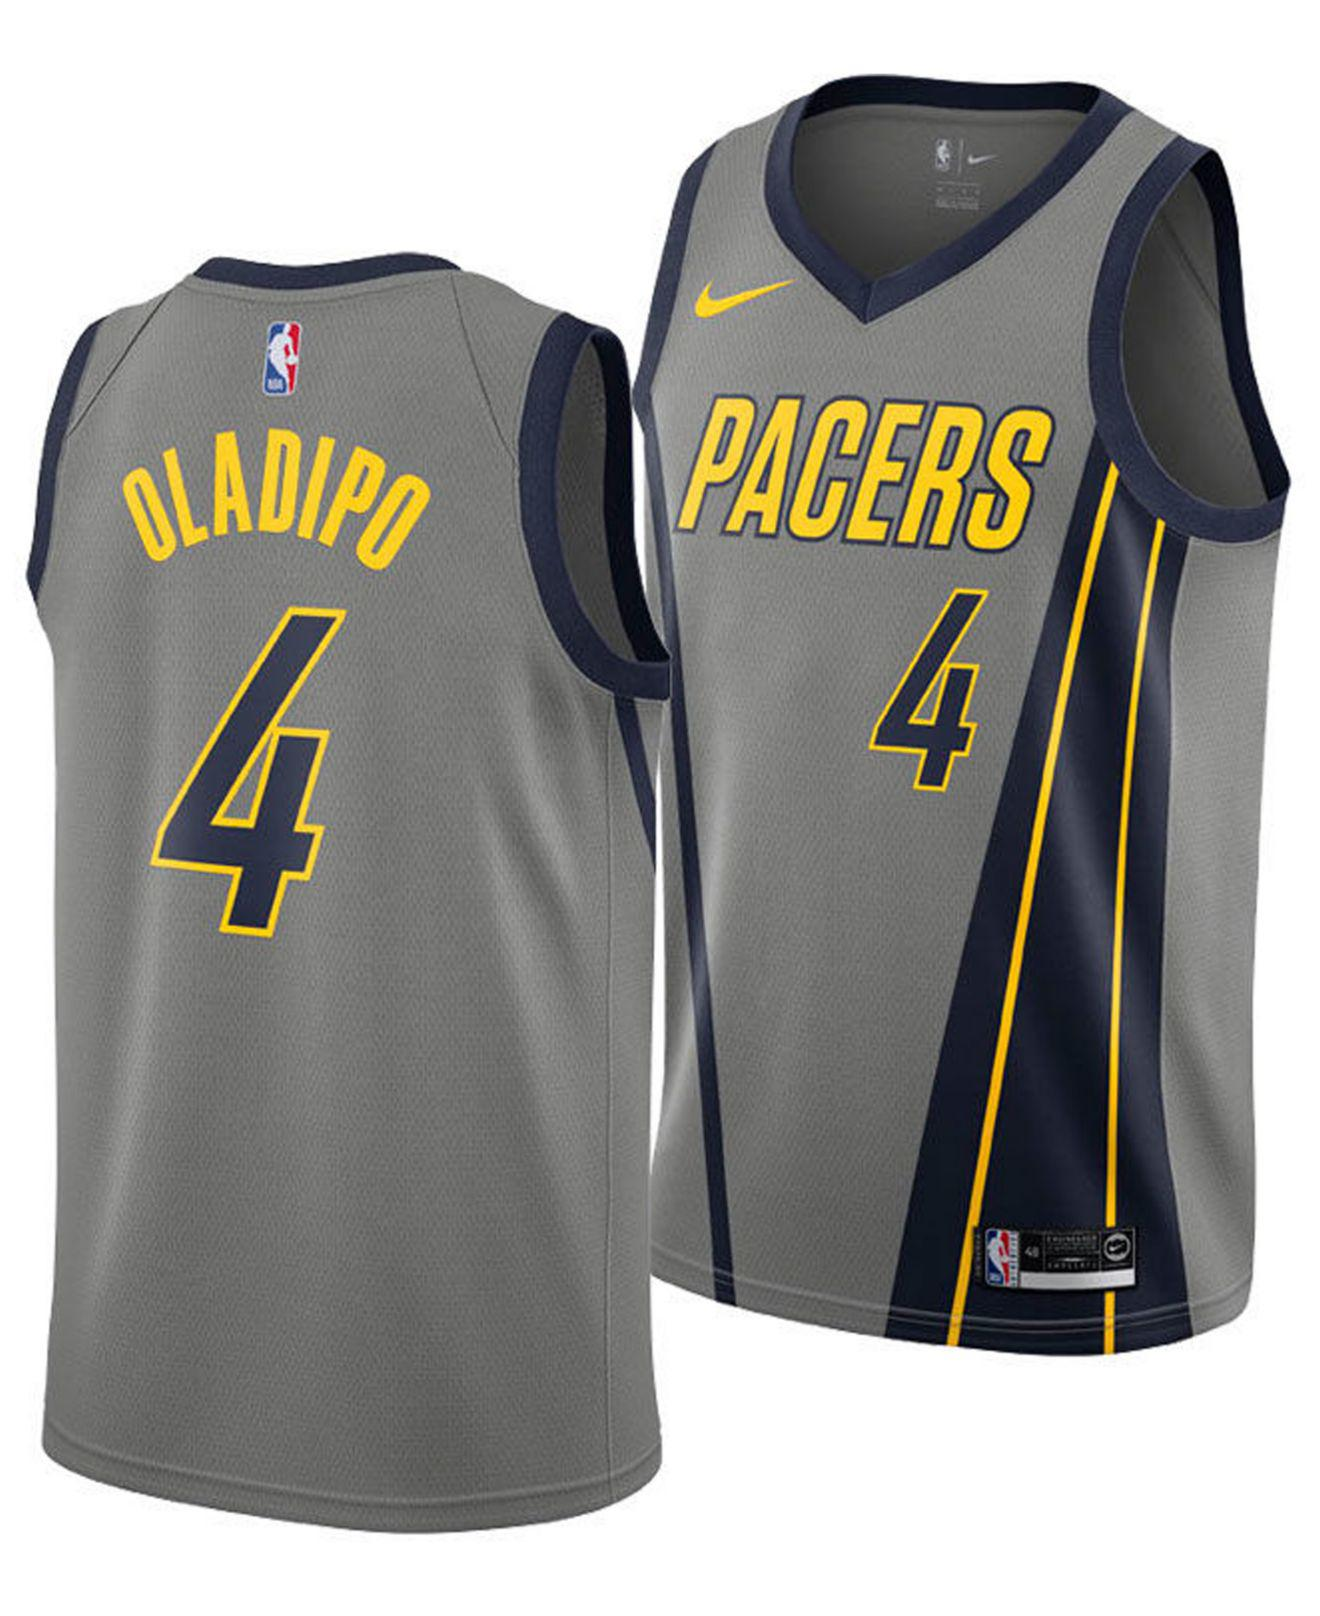 69ca27ef5 Nike Victor Oladipo Indiana Pacers City Swingman Jersey 2018 in Gray ...